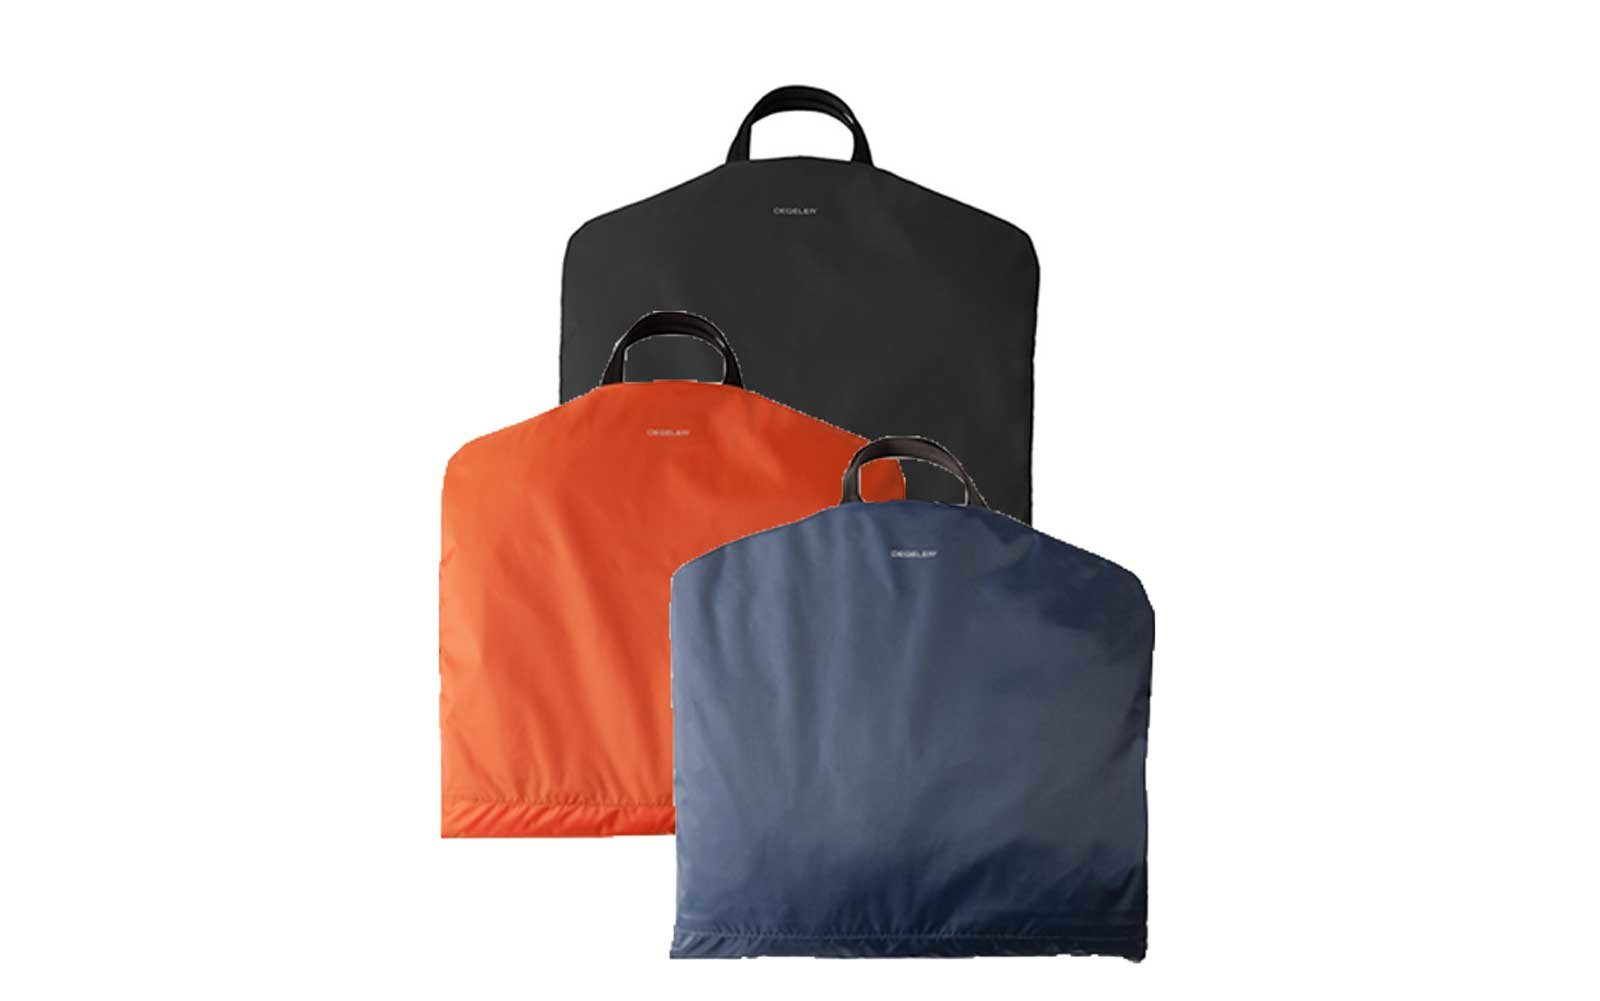 Degeler Travel Garment Bag